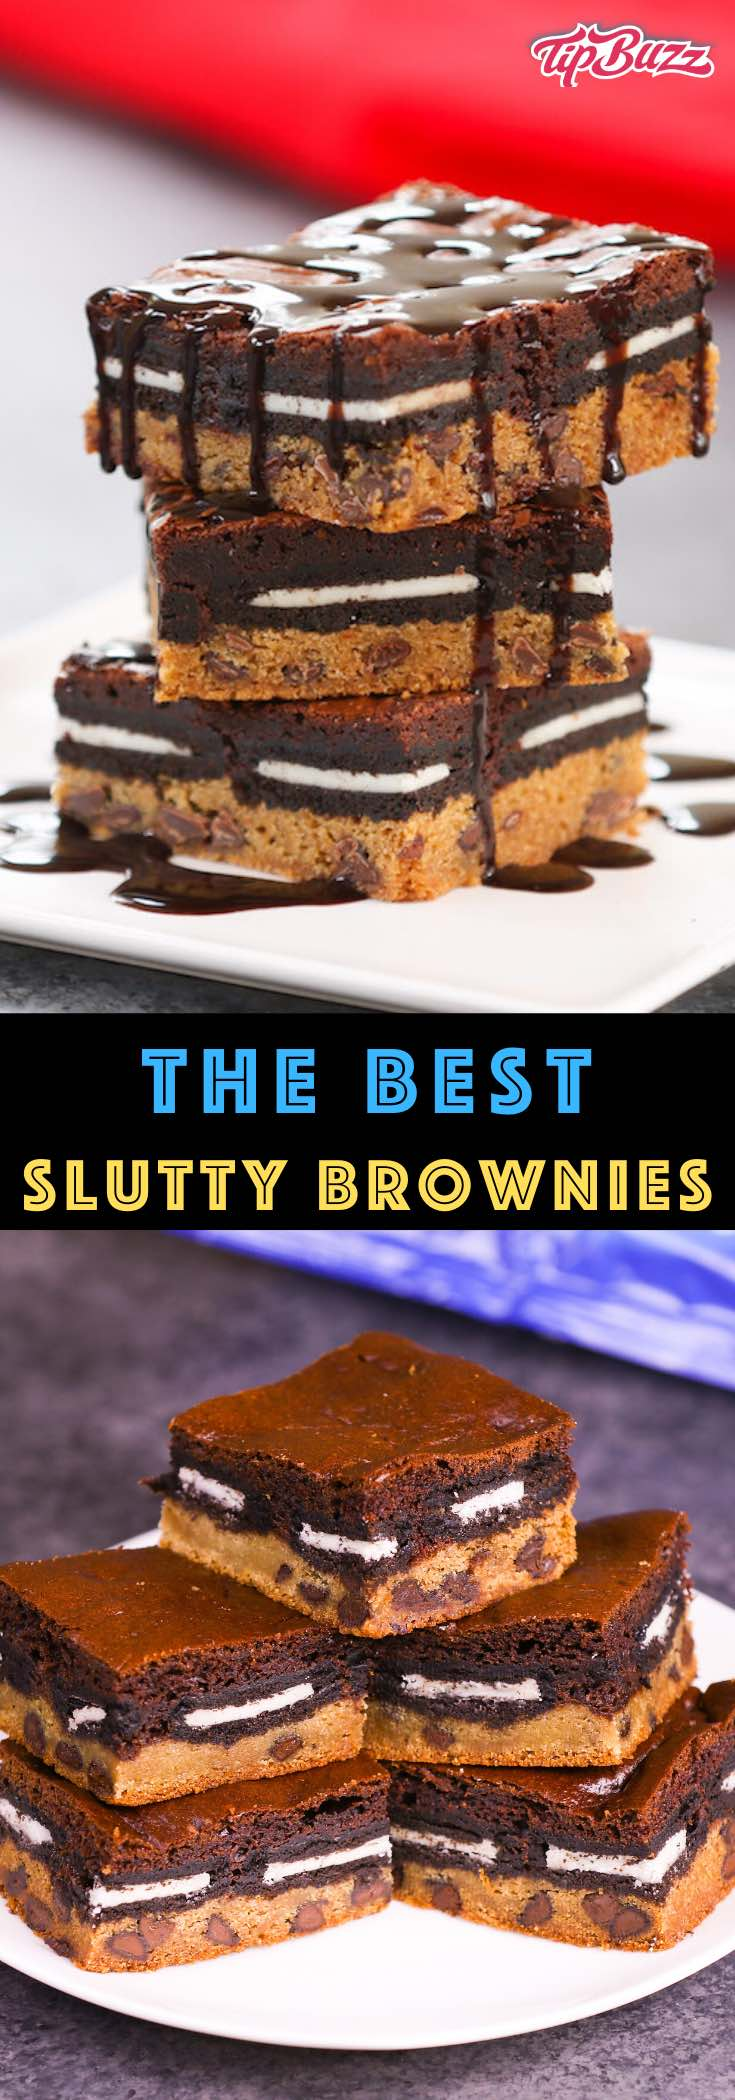 These Slutty Brownies melt in your mouth with rich layers of cookie dough, Oreo cookies and brownies. This slutty brownie recipe is easy to make whenever you want an extra-decadent treat! #SluttyBrownies